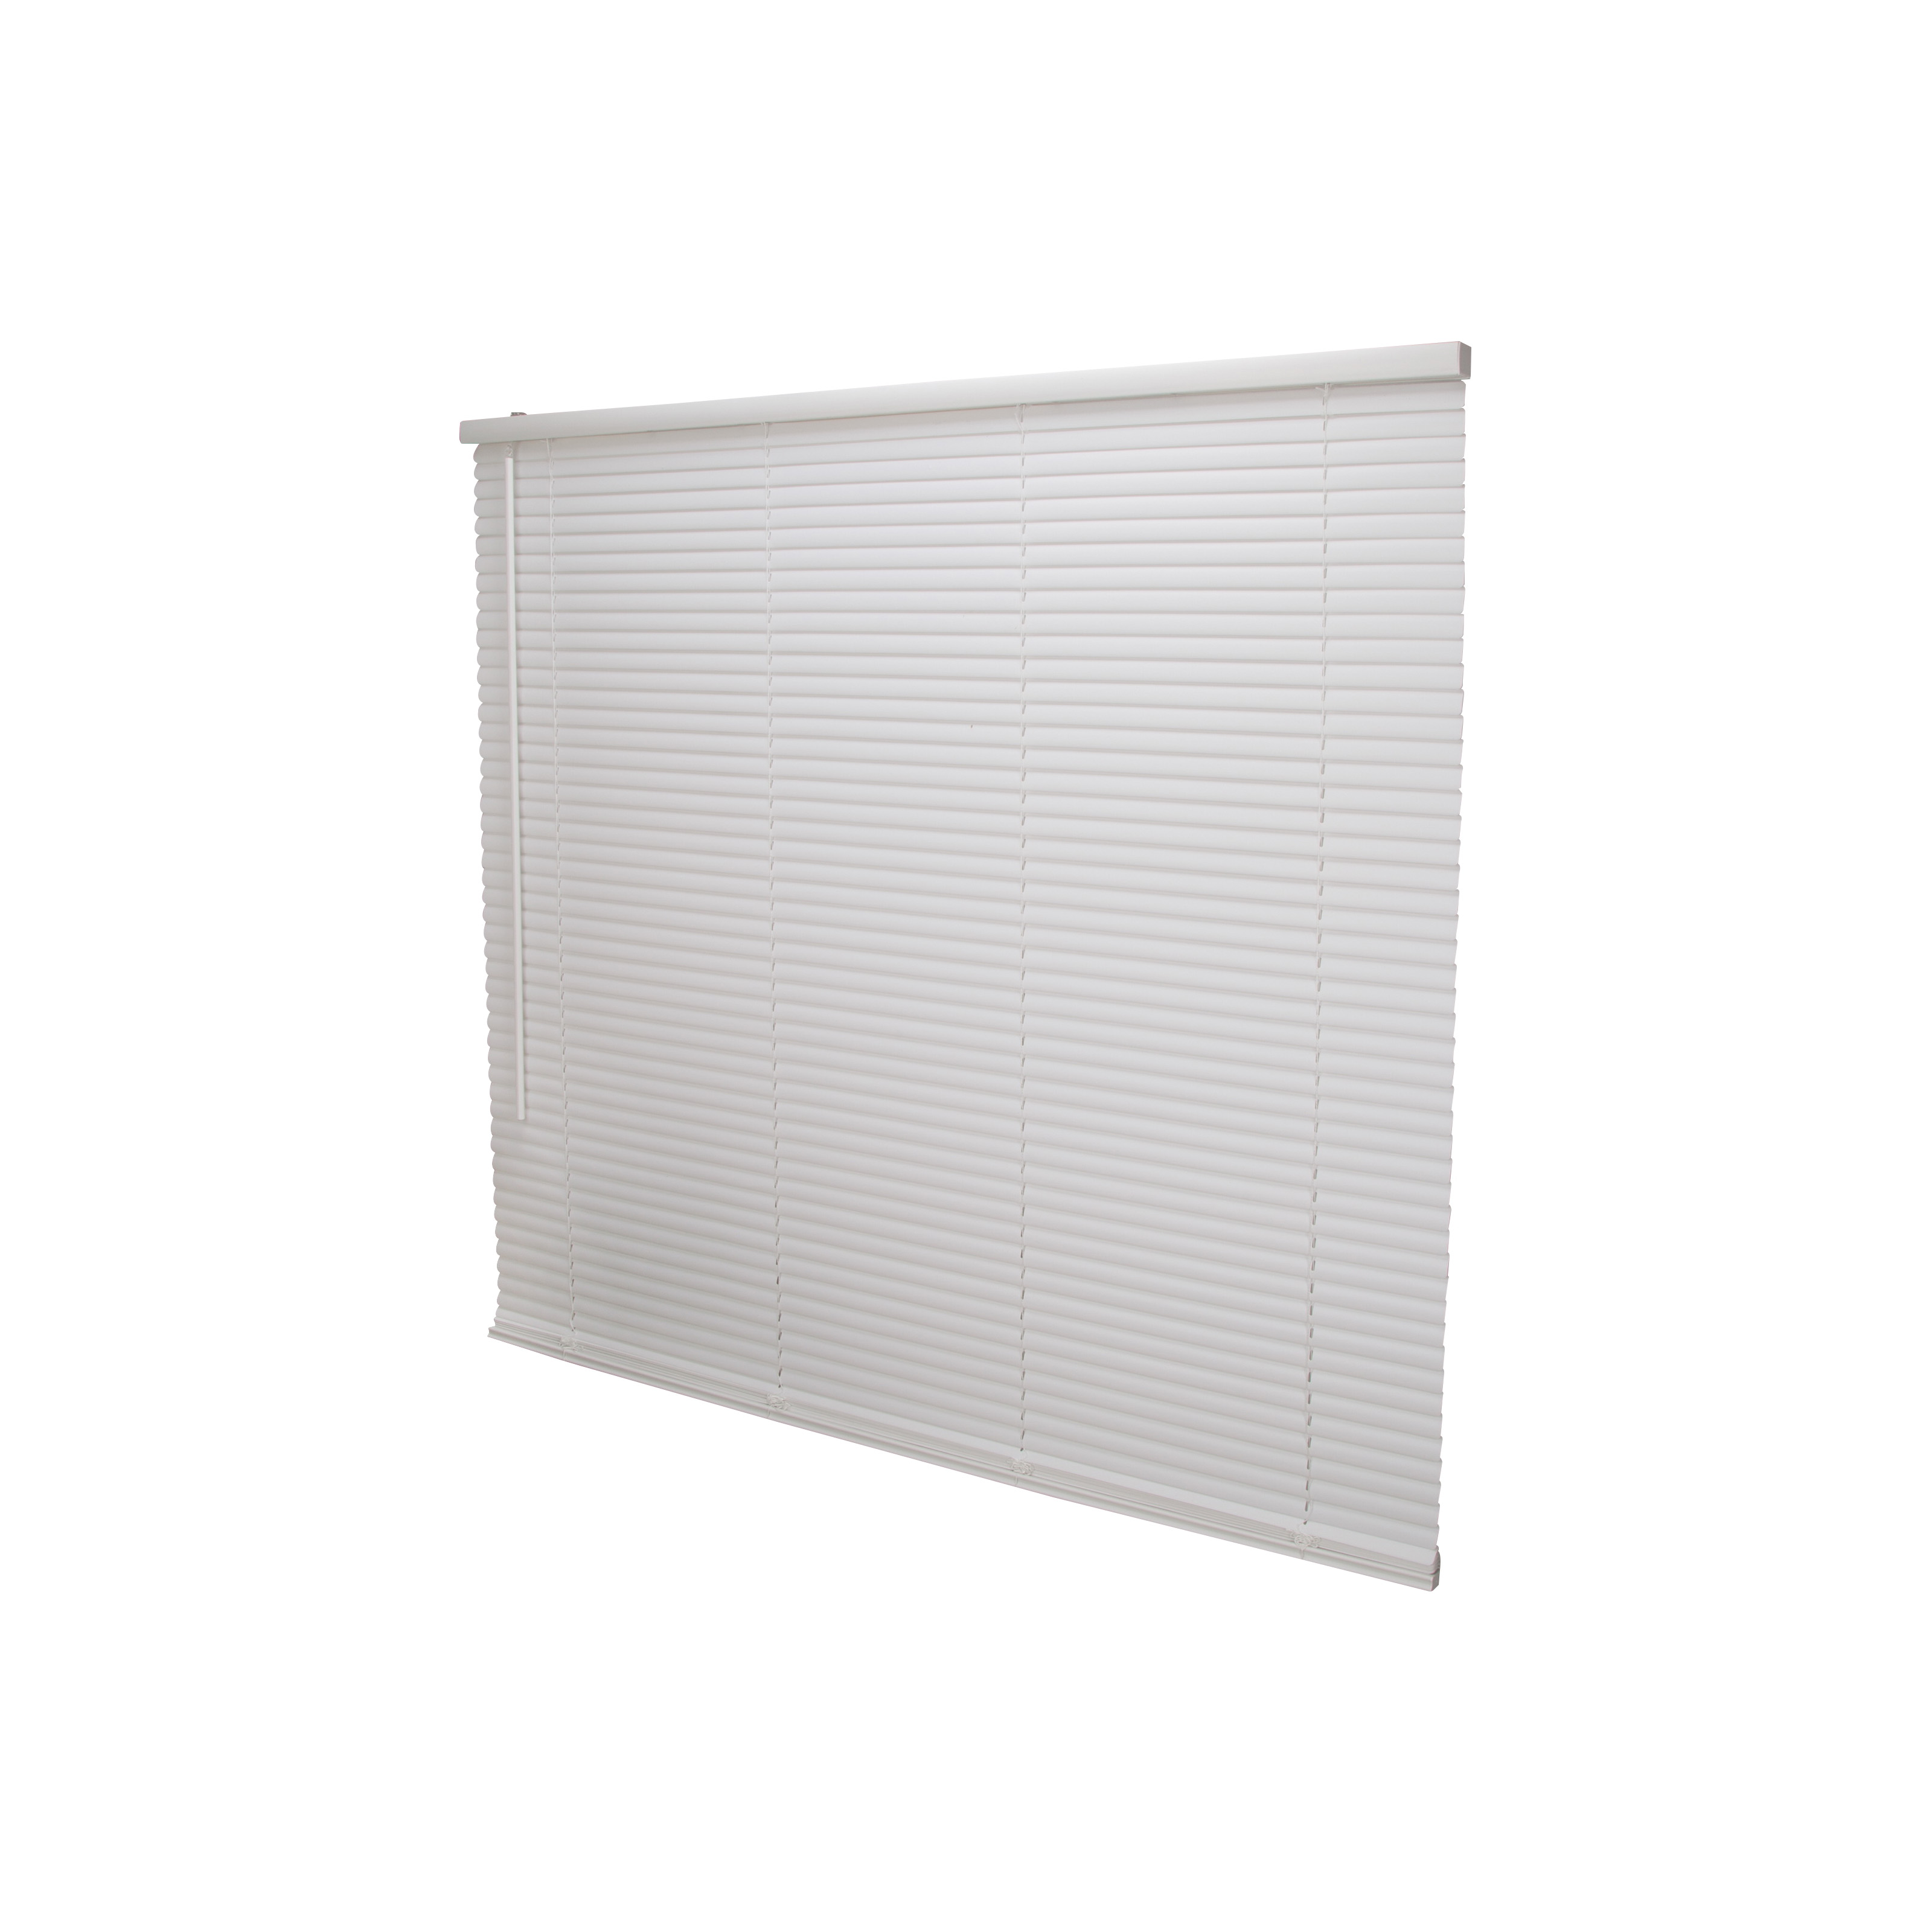 Picture of Simple Spaces PVCMB-13A Cordless Mini Blind, 64 in L, 43 in W, Vinyl, White